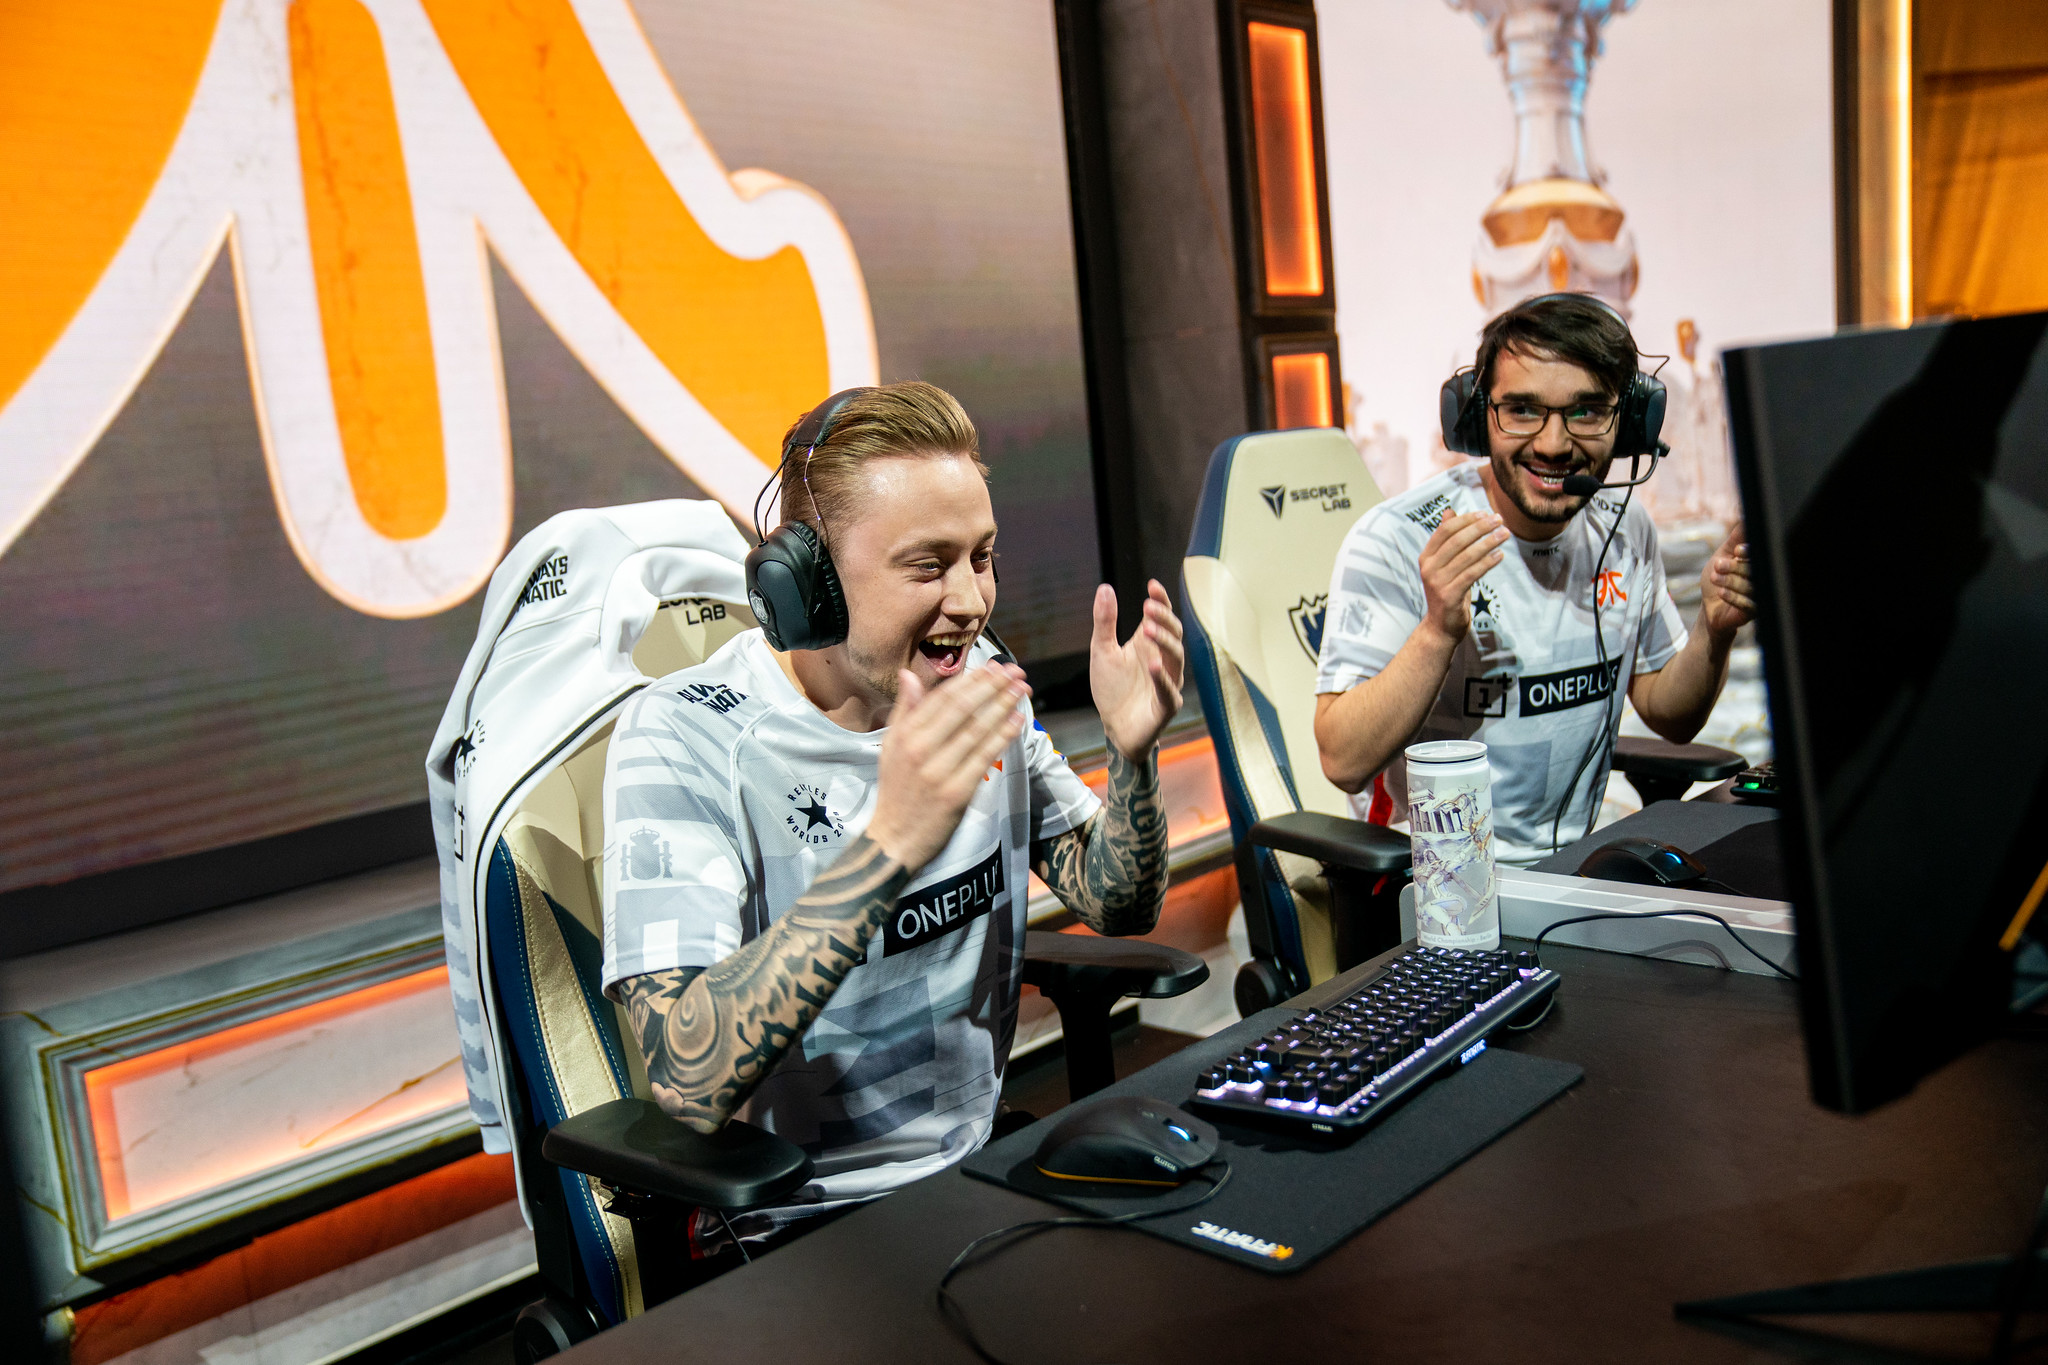 Fnatic's Rekkles and Hylissang elated after their victory against Royal Never Give Up, securing their place out of Groups on Day 7.